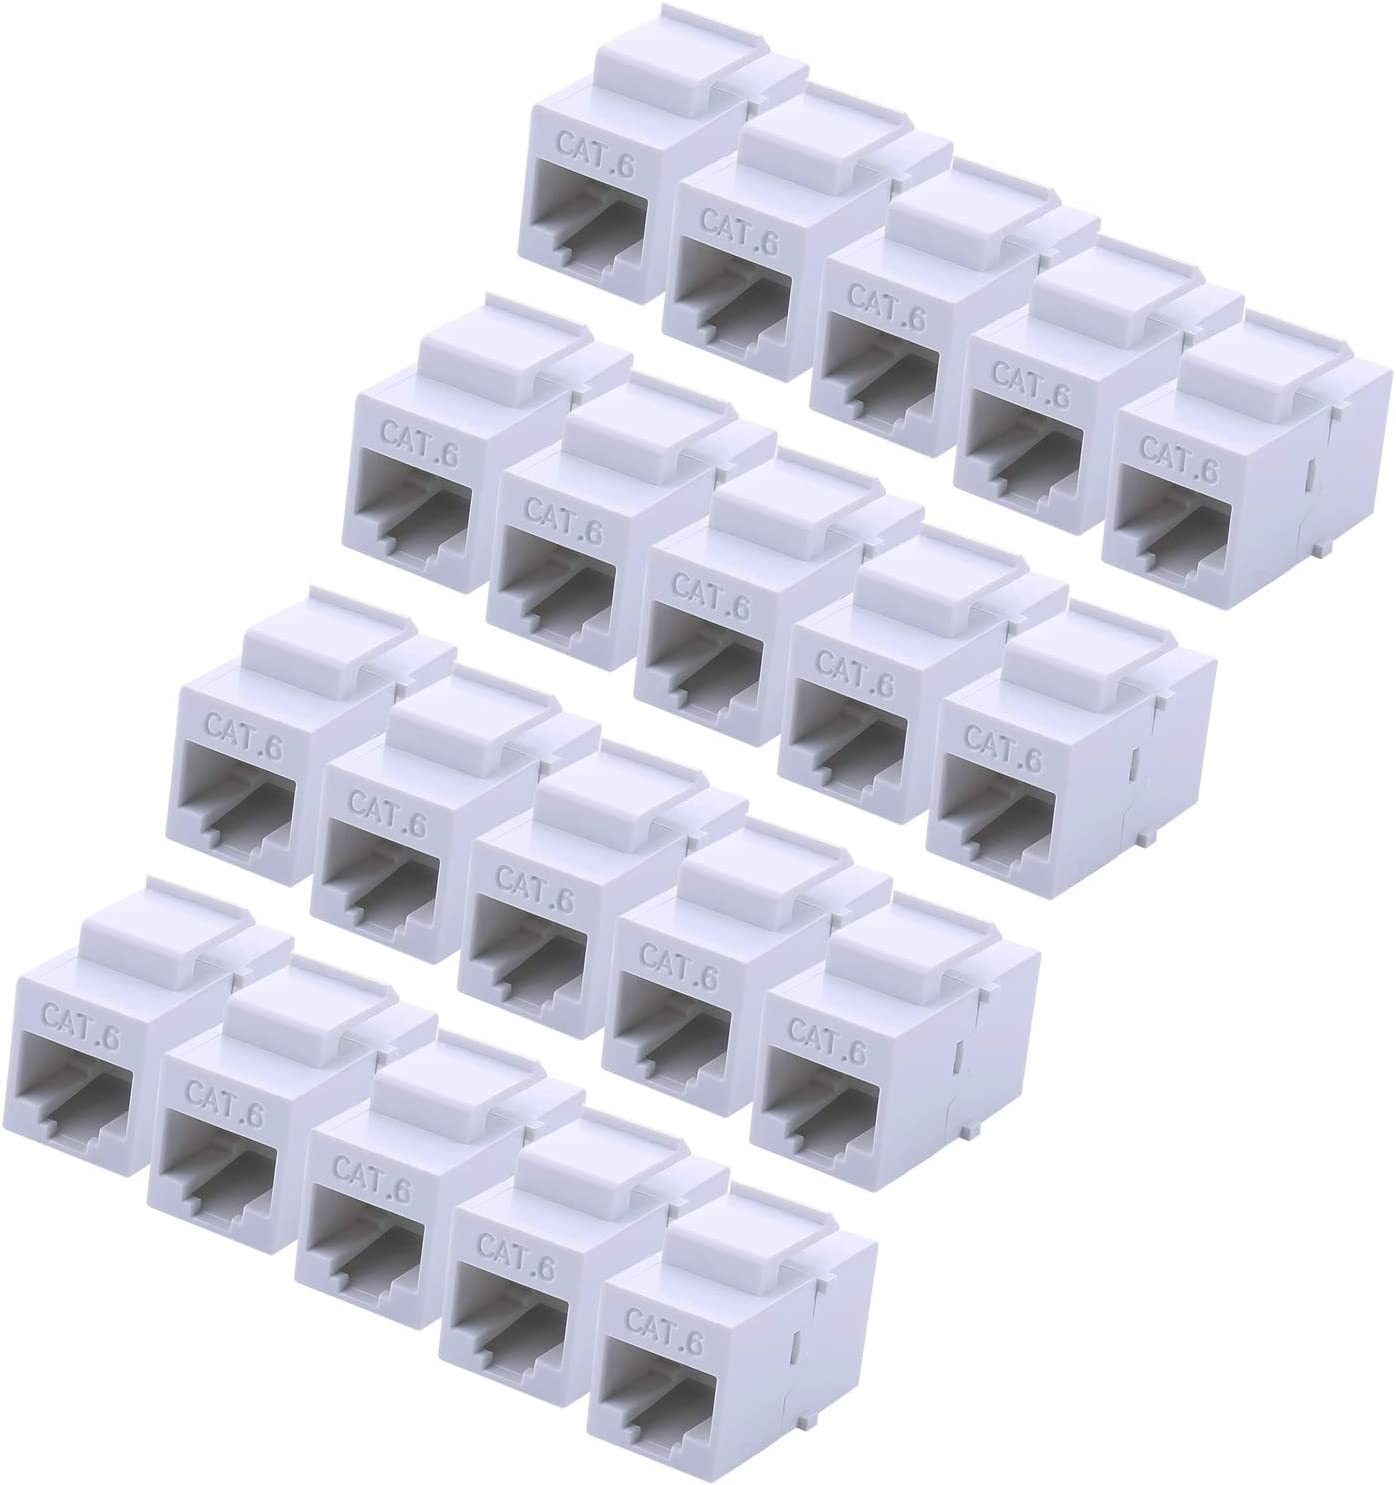 RJ45 Keystone Coupler - 20Pack iGreely Cat6 Cat5e Cat5 Compatible 8P8C Ethernet Network Jack Insert Snap in Adapter Connector Port Inline Coupler for Wall Plate Outlet Panel-White